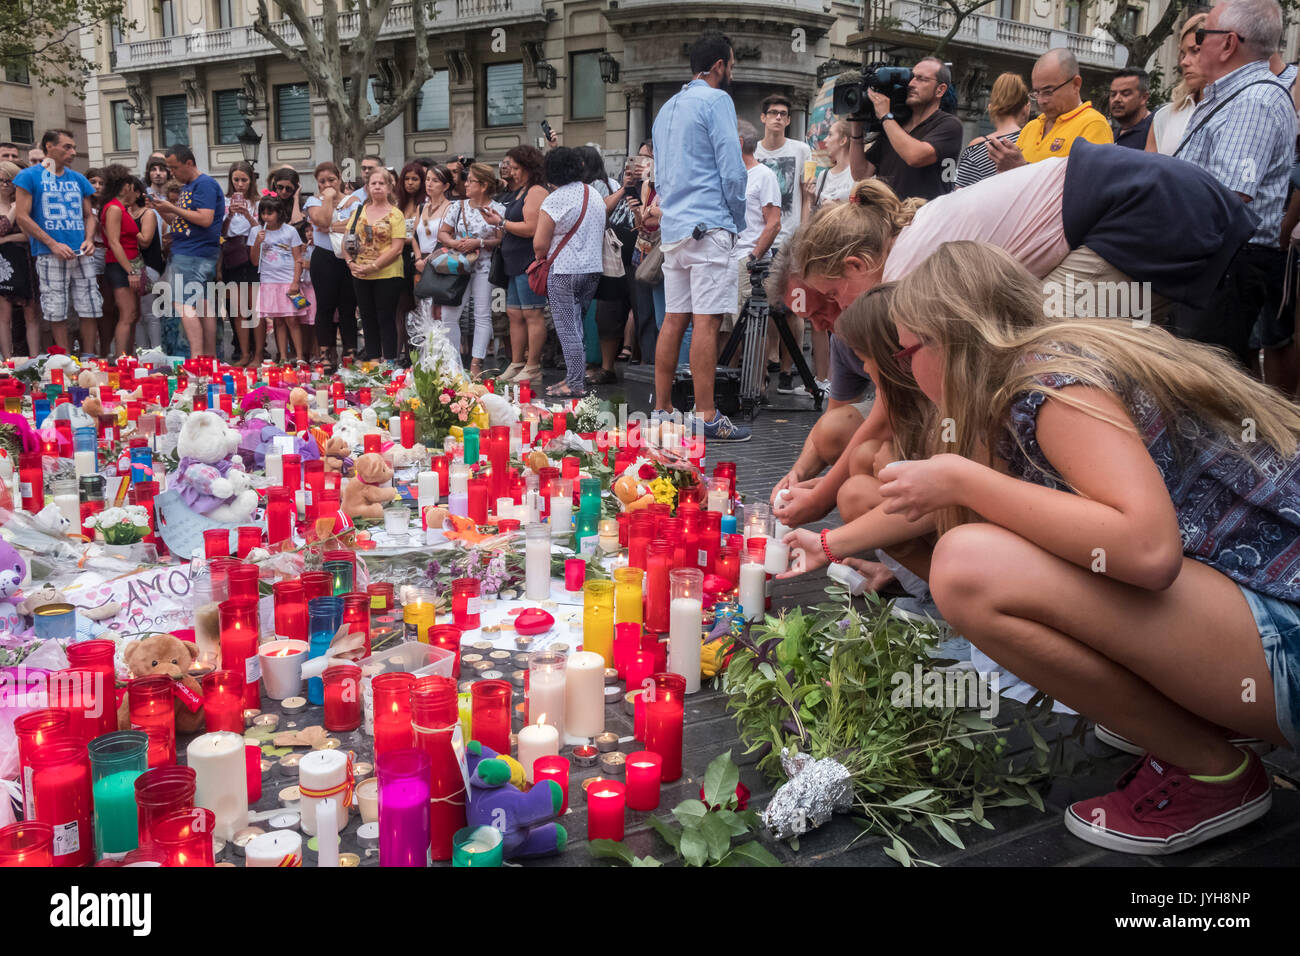 Barcelona, Spain. 19th Aug, 2017. On 19 August 2017 the city of Barcelona suffered the ISIS terrorist attack, with a total of 13 dead and hundreds injured. The city was an example of generosity with the victims and of brotherhood with the Muslim people. Barcelona shouts to the whole world: We are not afraid! Credit: Miguel Galmés/Alamy Live News Stock Photo